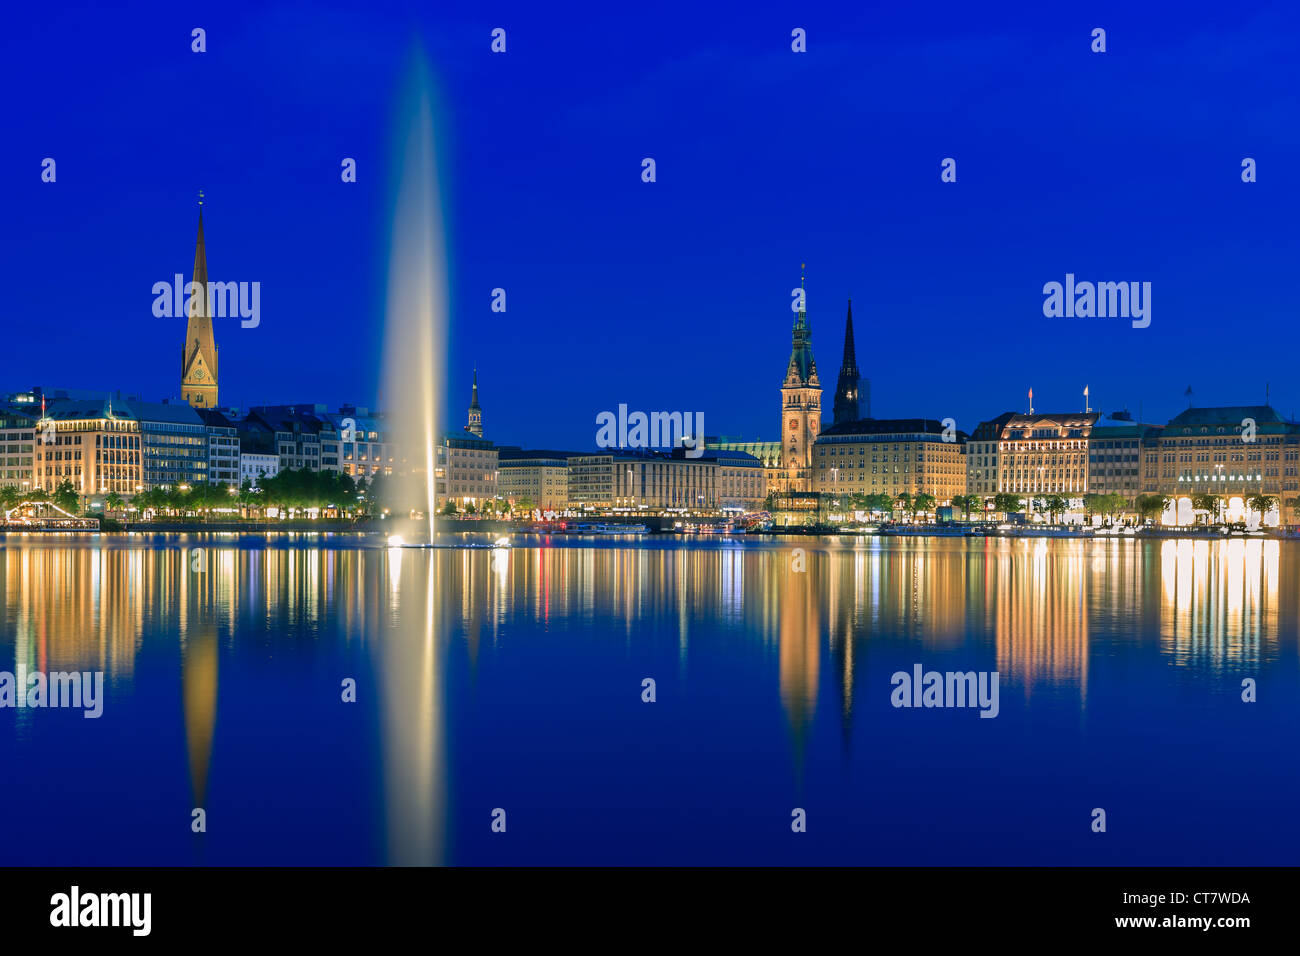 Hamburg skyline taken right after sunset at the blue hour over the binnenalster. Stock Photo